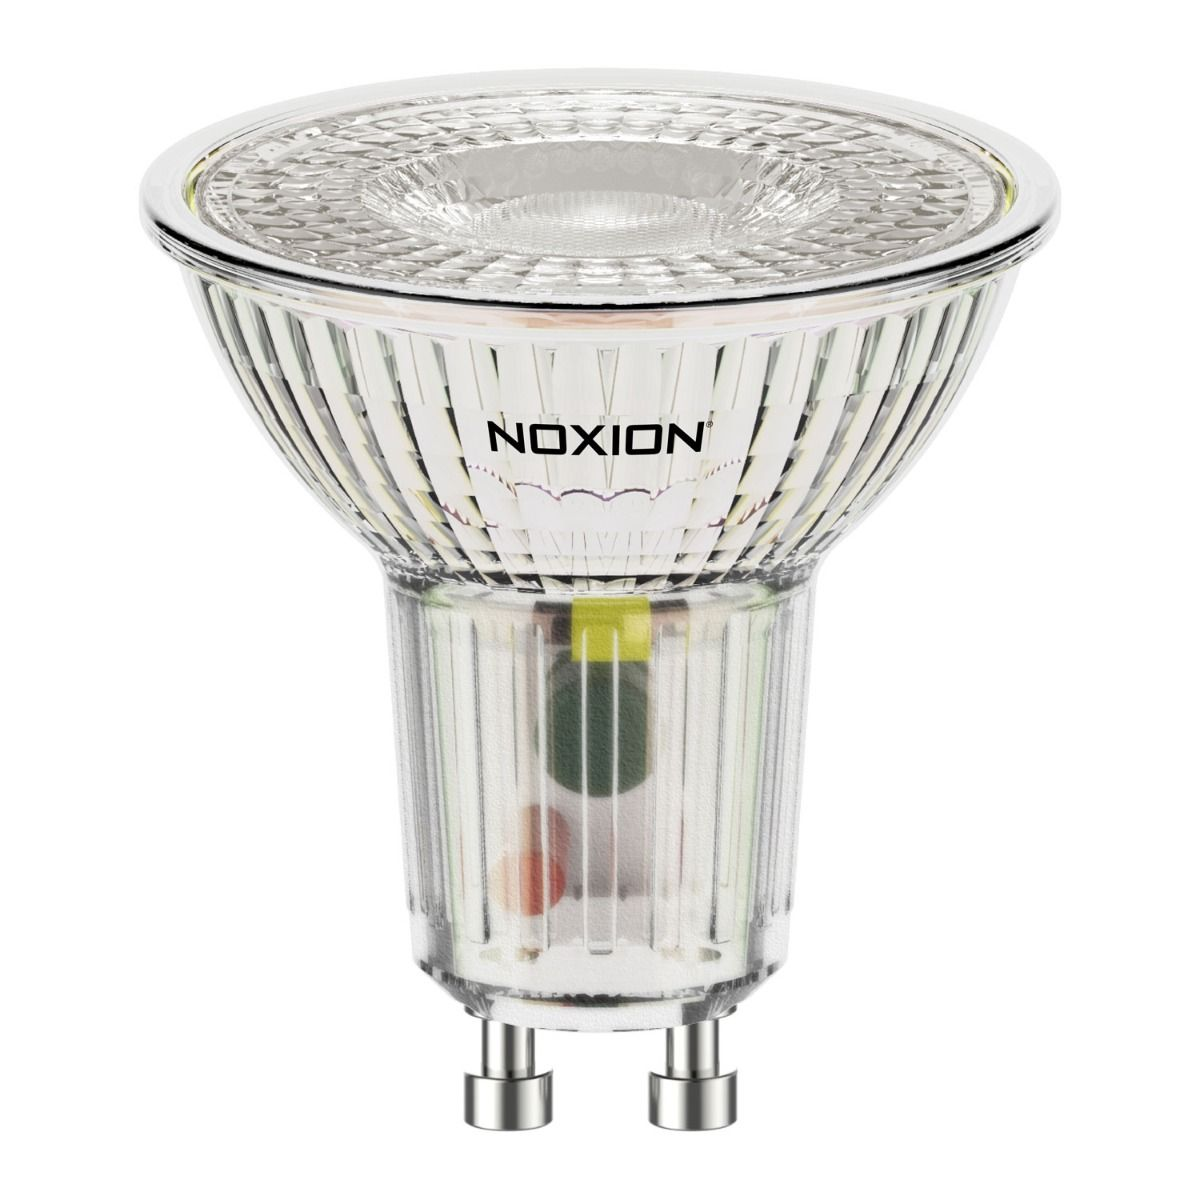 Noxion LED Spot GU10 4W 827 36D 390lm | Extra Warm White - Replaces 50W